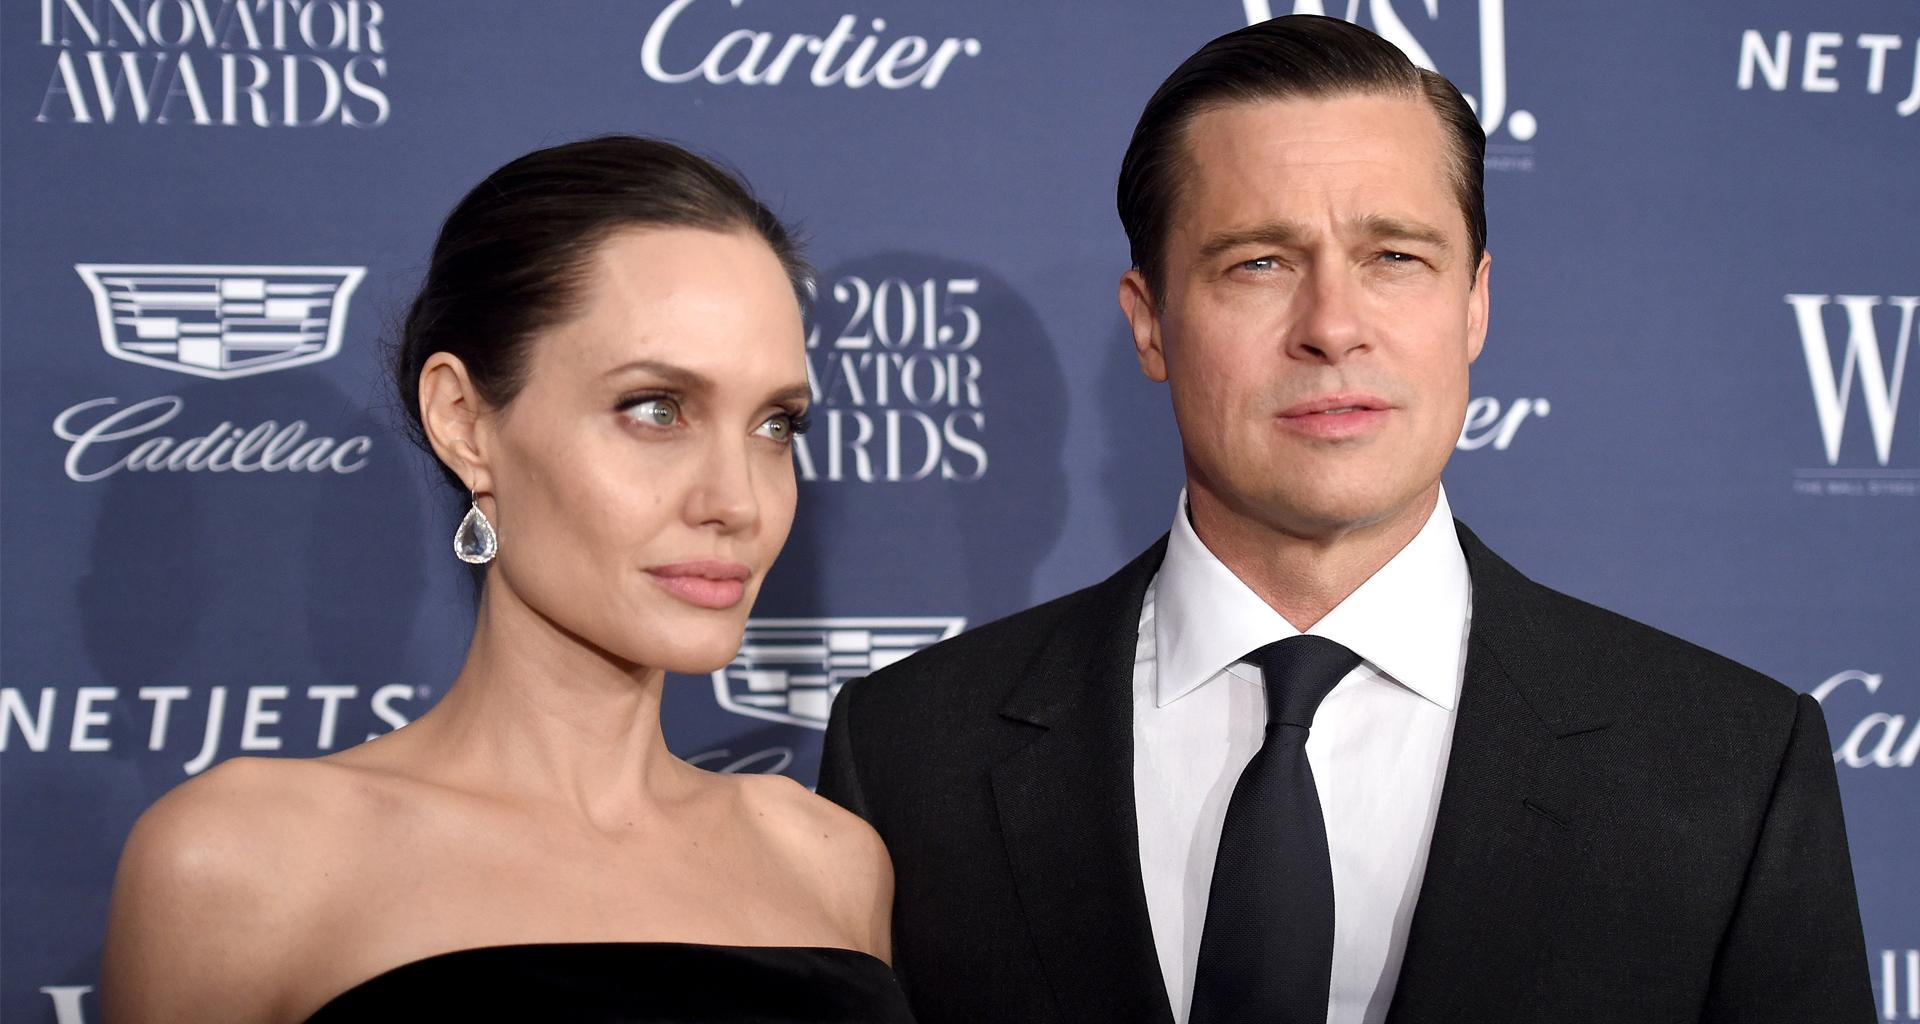 Angelina Jolie Reportedly Not Happy About Ex Brad Pitt's Pic With Lena Dunham - Here's Why!